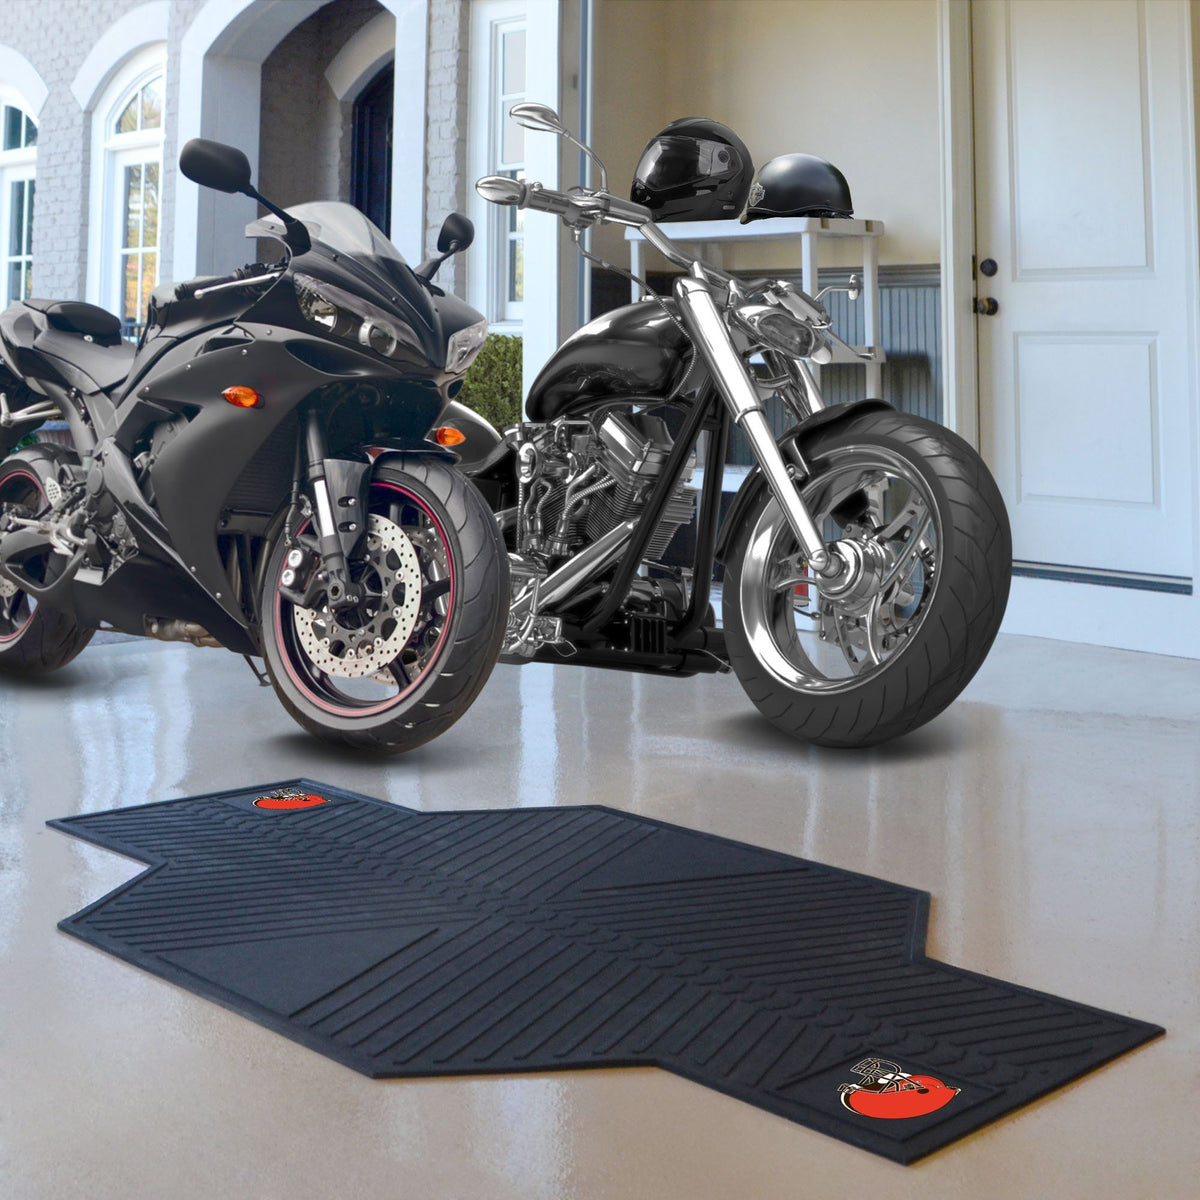 "NFL - Motorcycle Mat, 82.5"" x 42"" NFL Mats, Motorcycle Accessory, Motorcycle Mat, NFL, Auto Fan Mats Cleveland Browns"